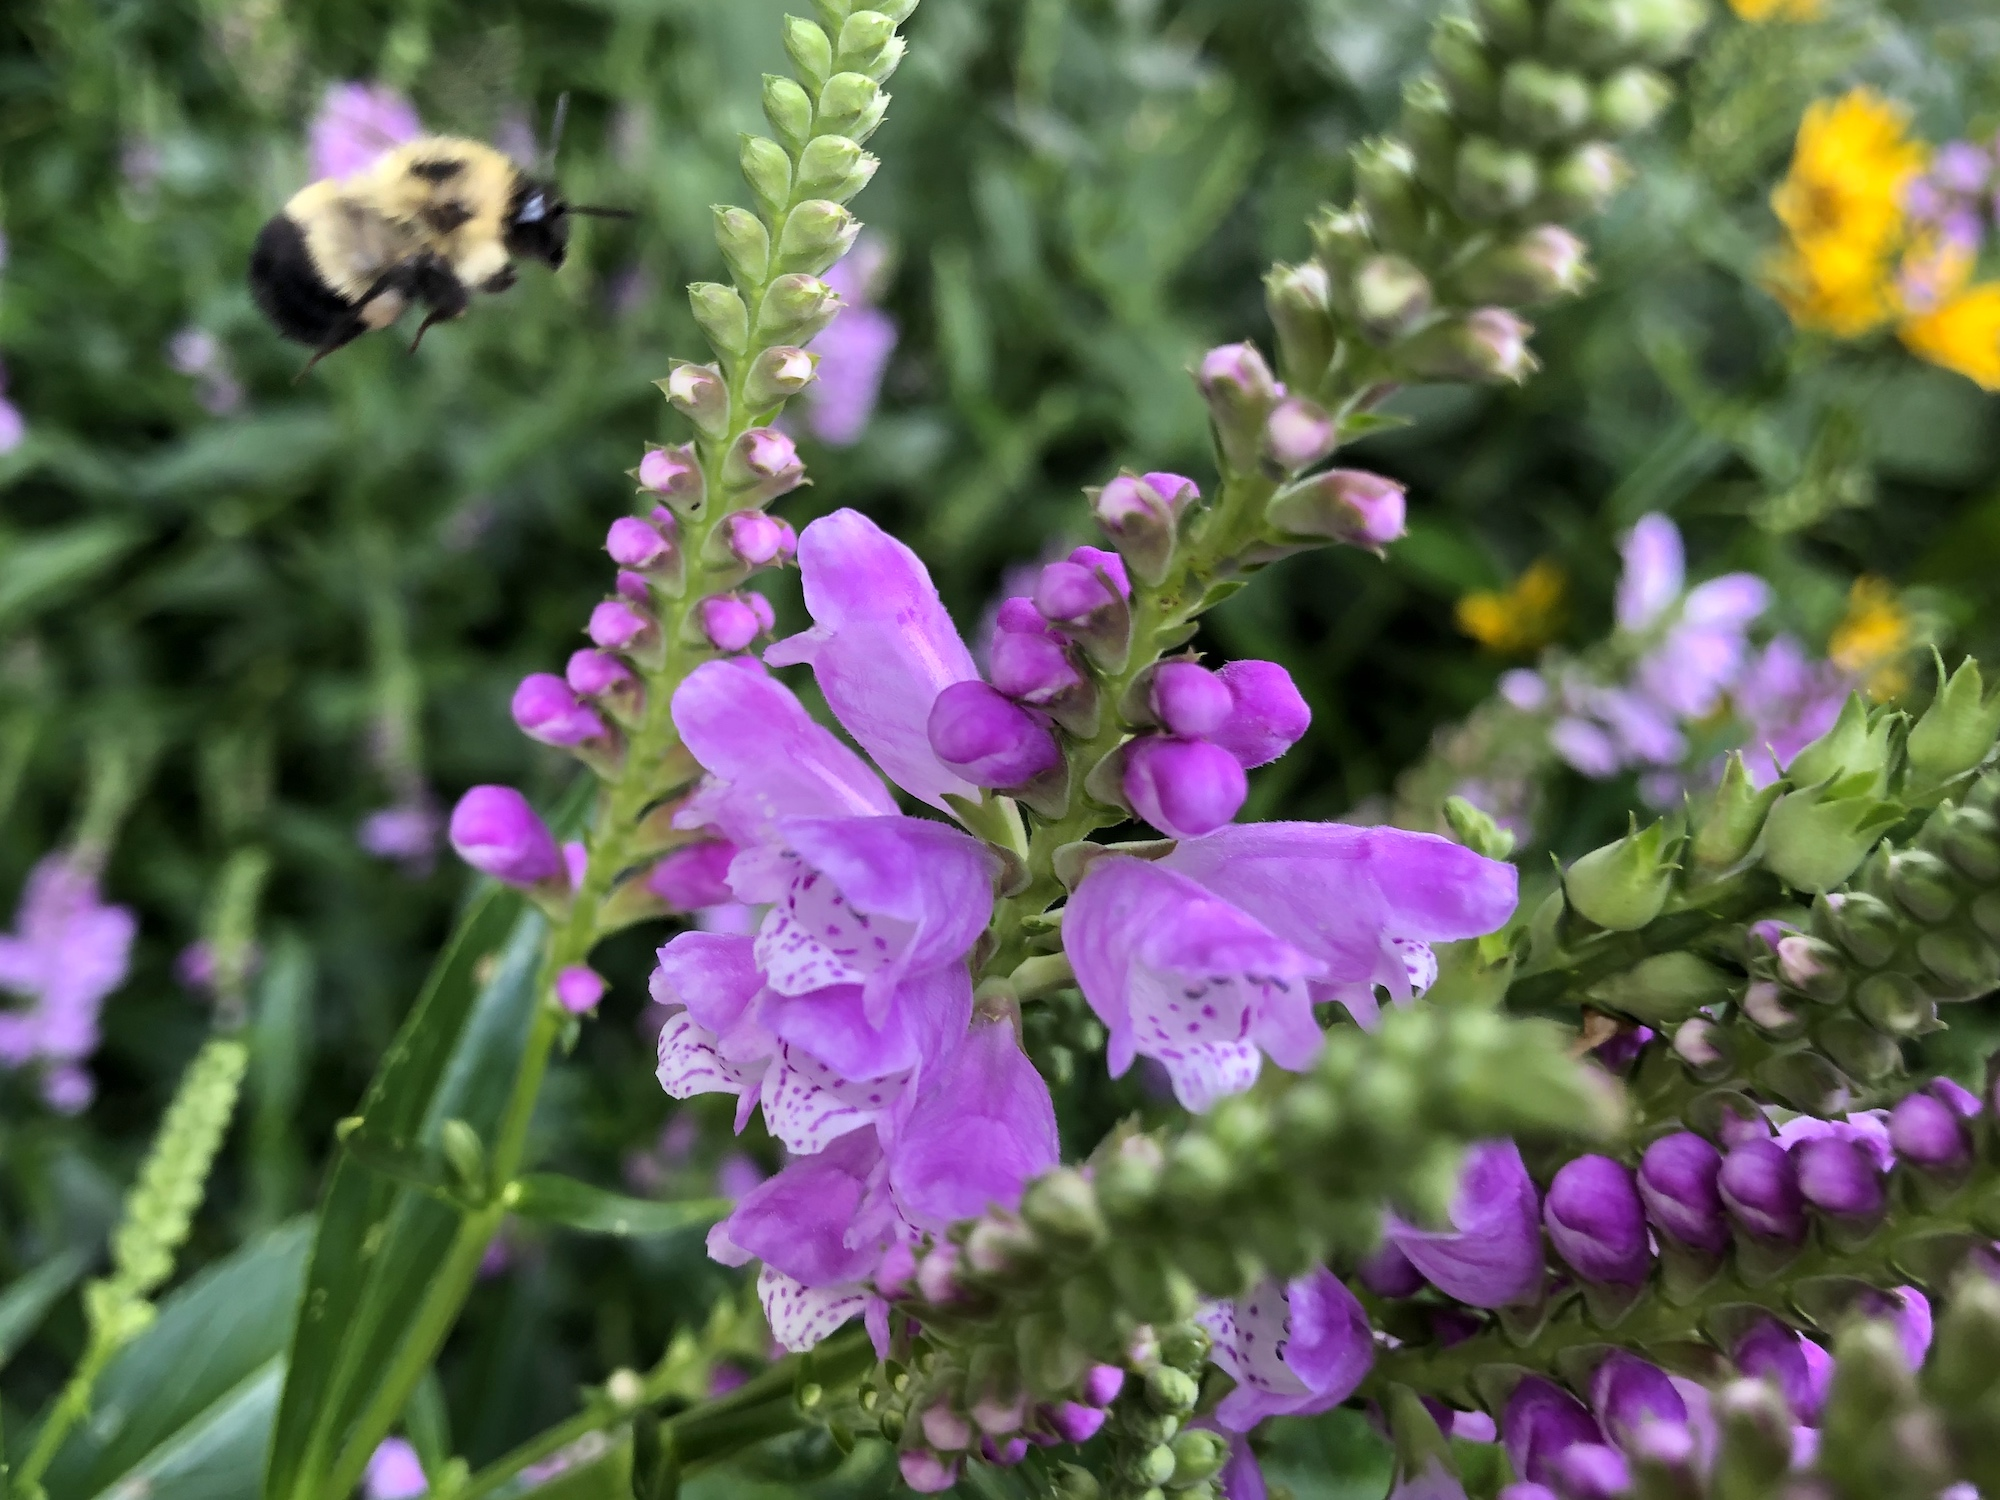 Obedient Plant in Thoreau Rain Garden in Madison, Wisconsin on August 2, 2020.